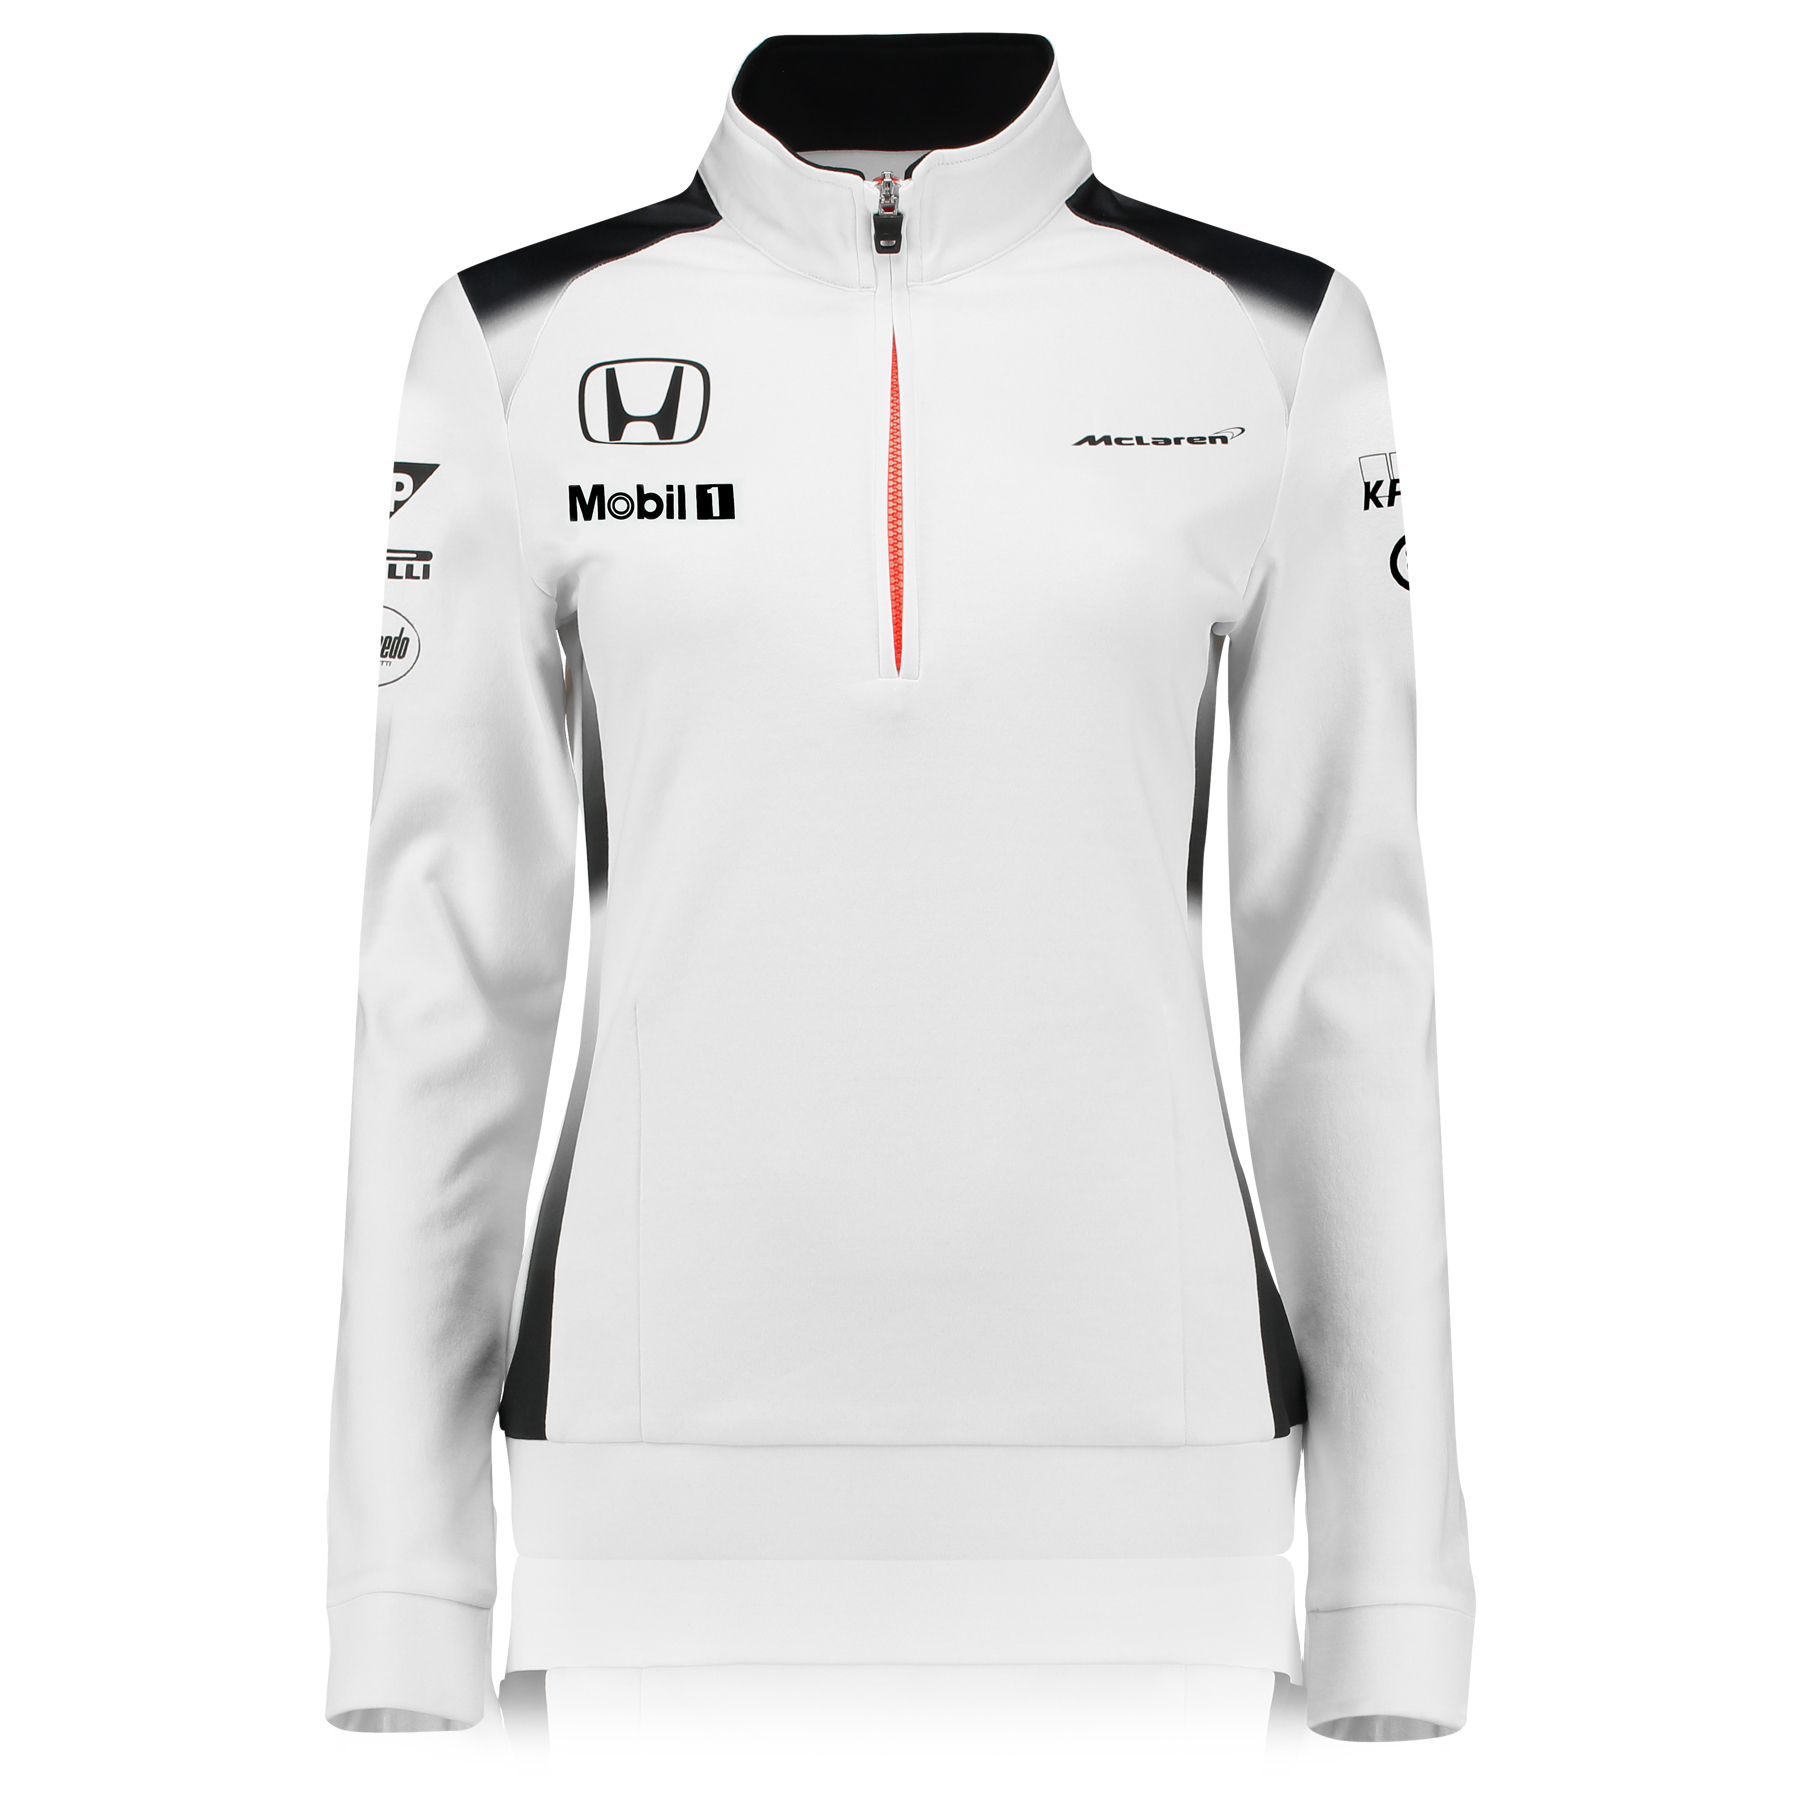 Mclaren Honda Official 2016 Team 1/4 Zip Sweatshirt Womens